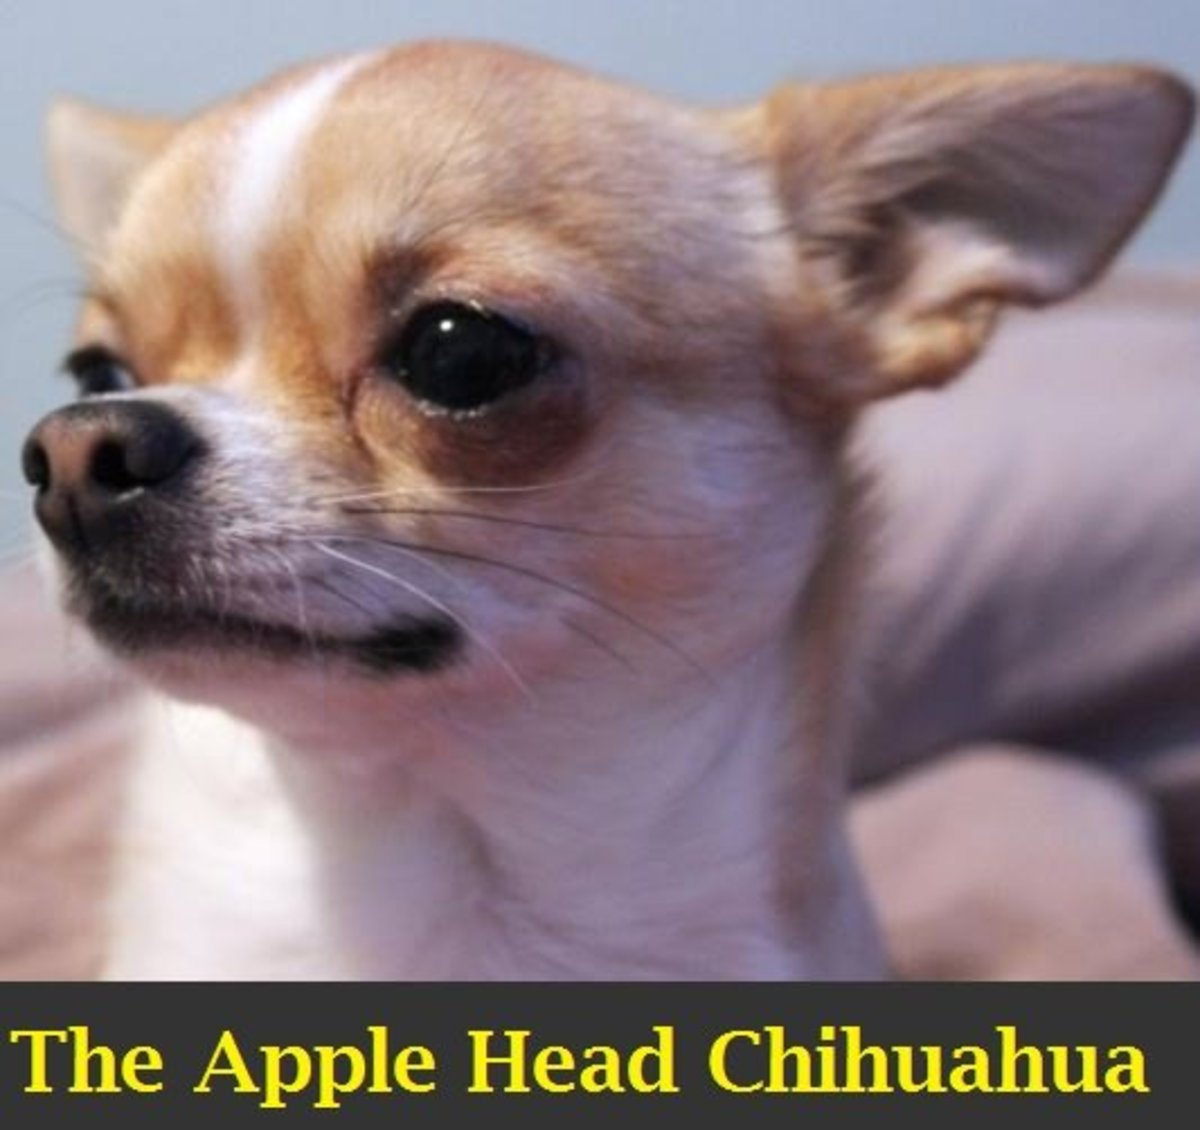 A Guide To The Apple Head Chihuahua Pethelpful By Fellow Animal Lovers And Experts